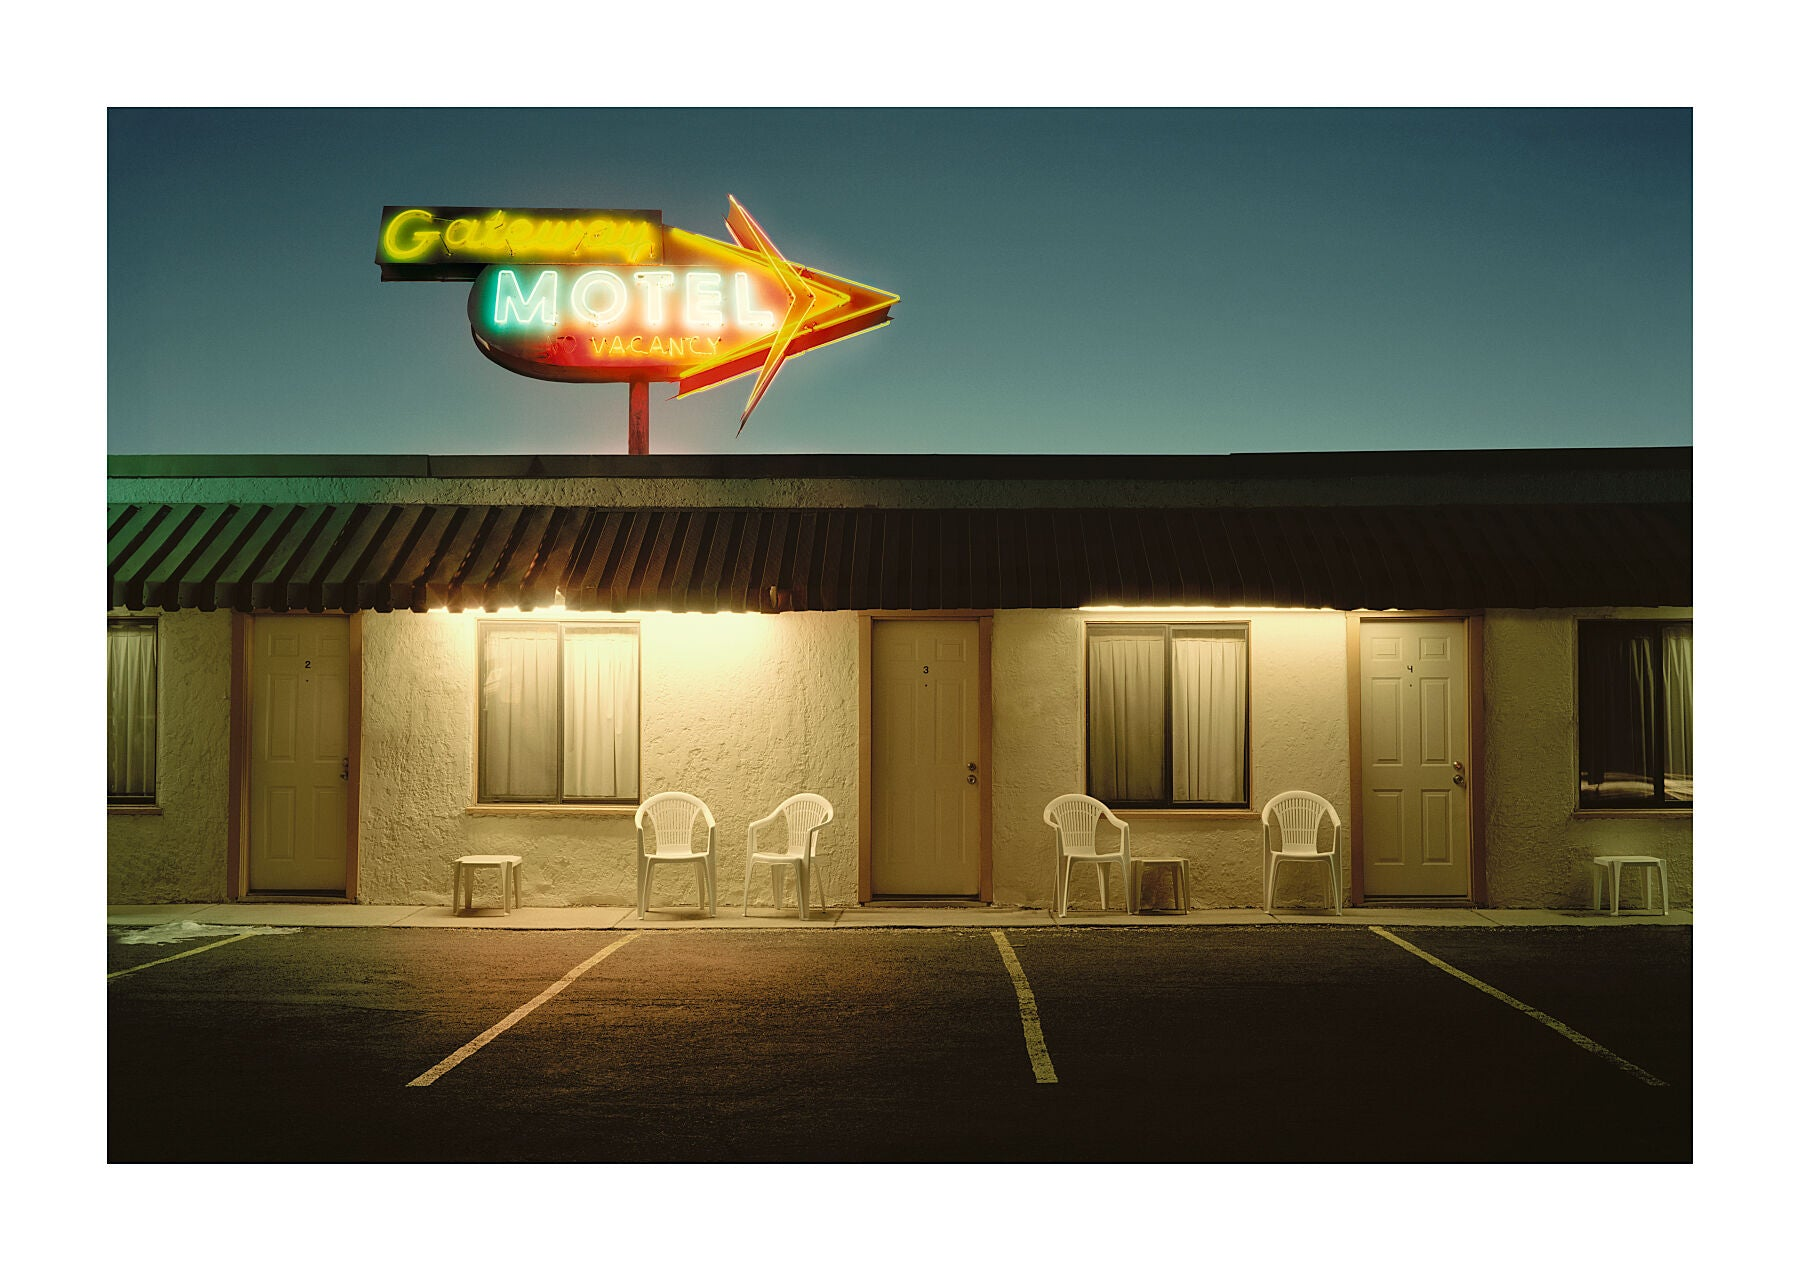 GATEWAY MOTEL - NEW MEXICO